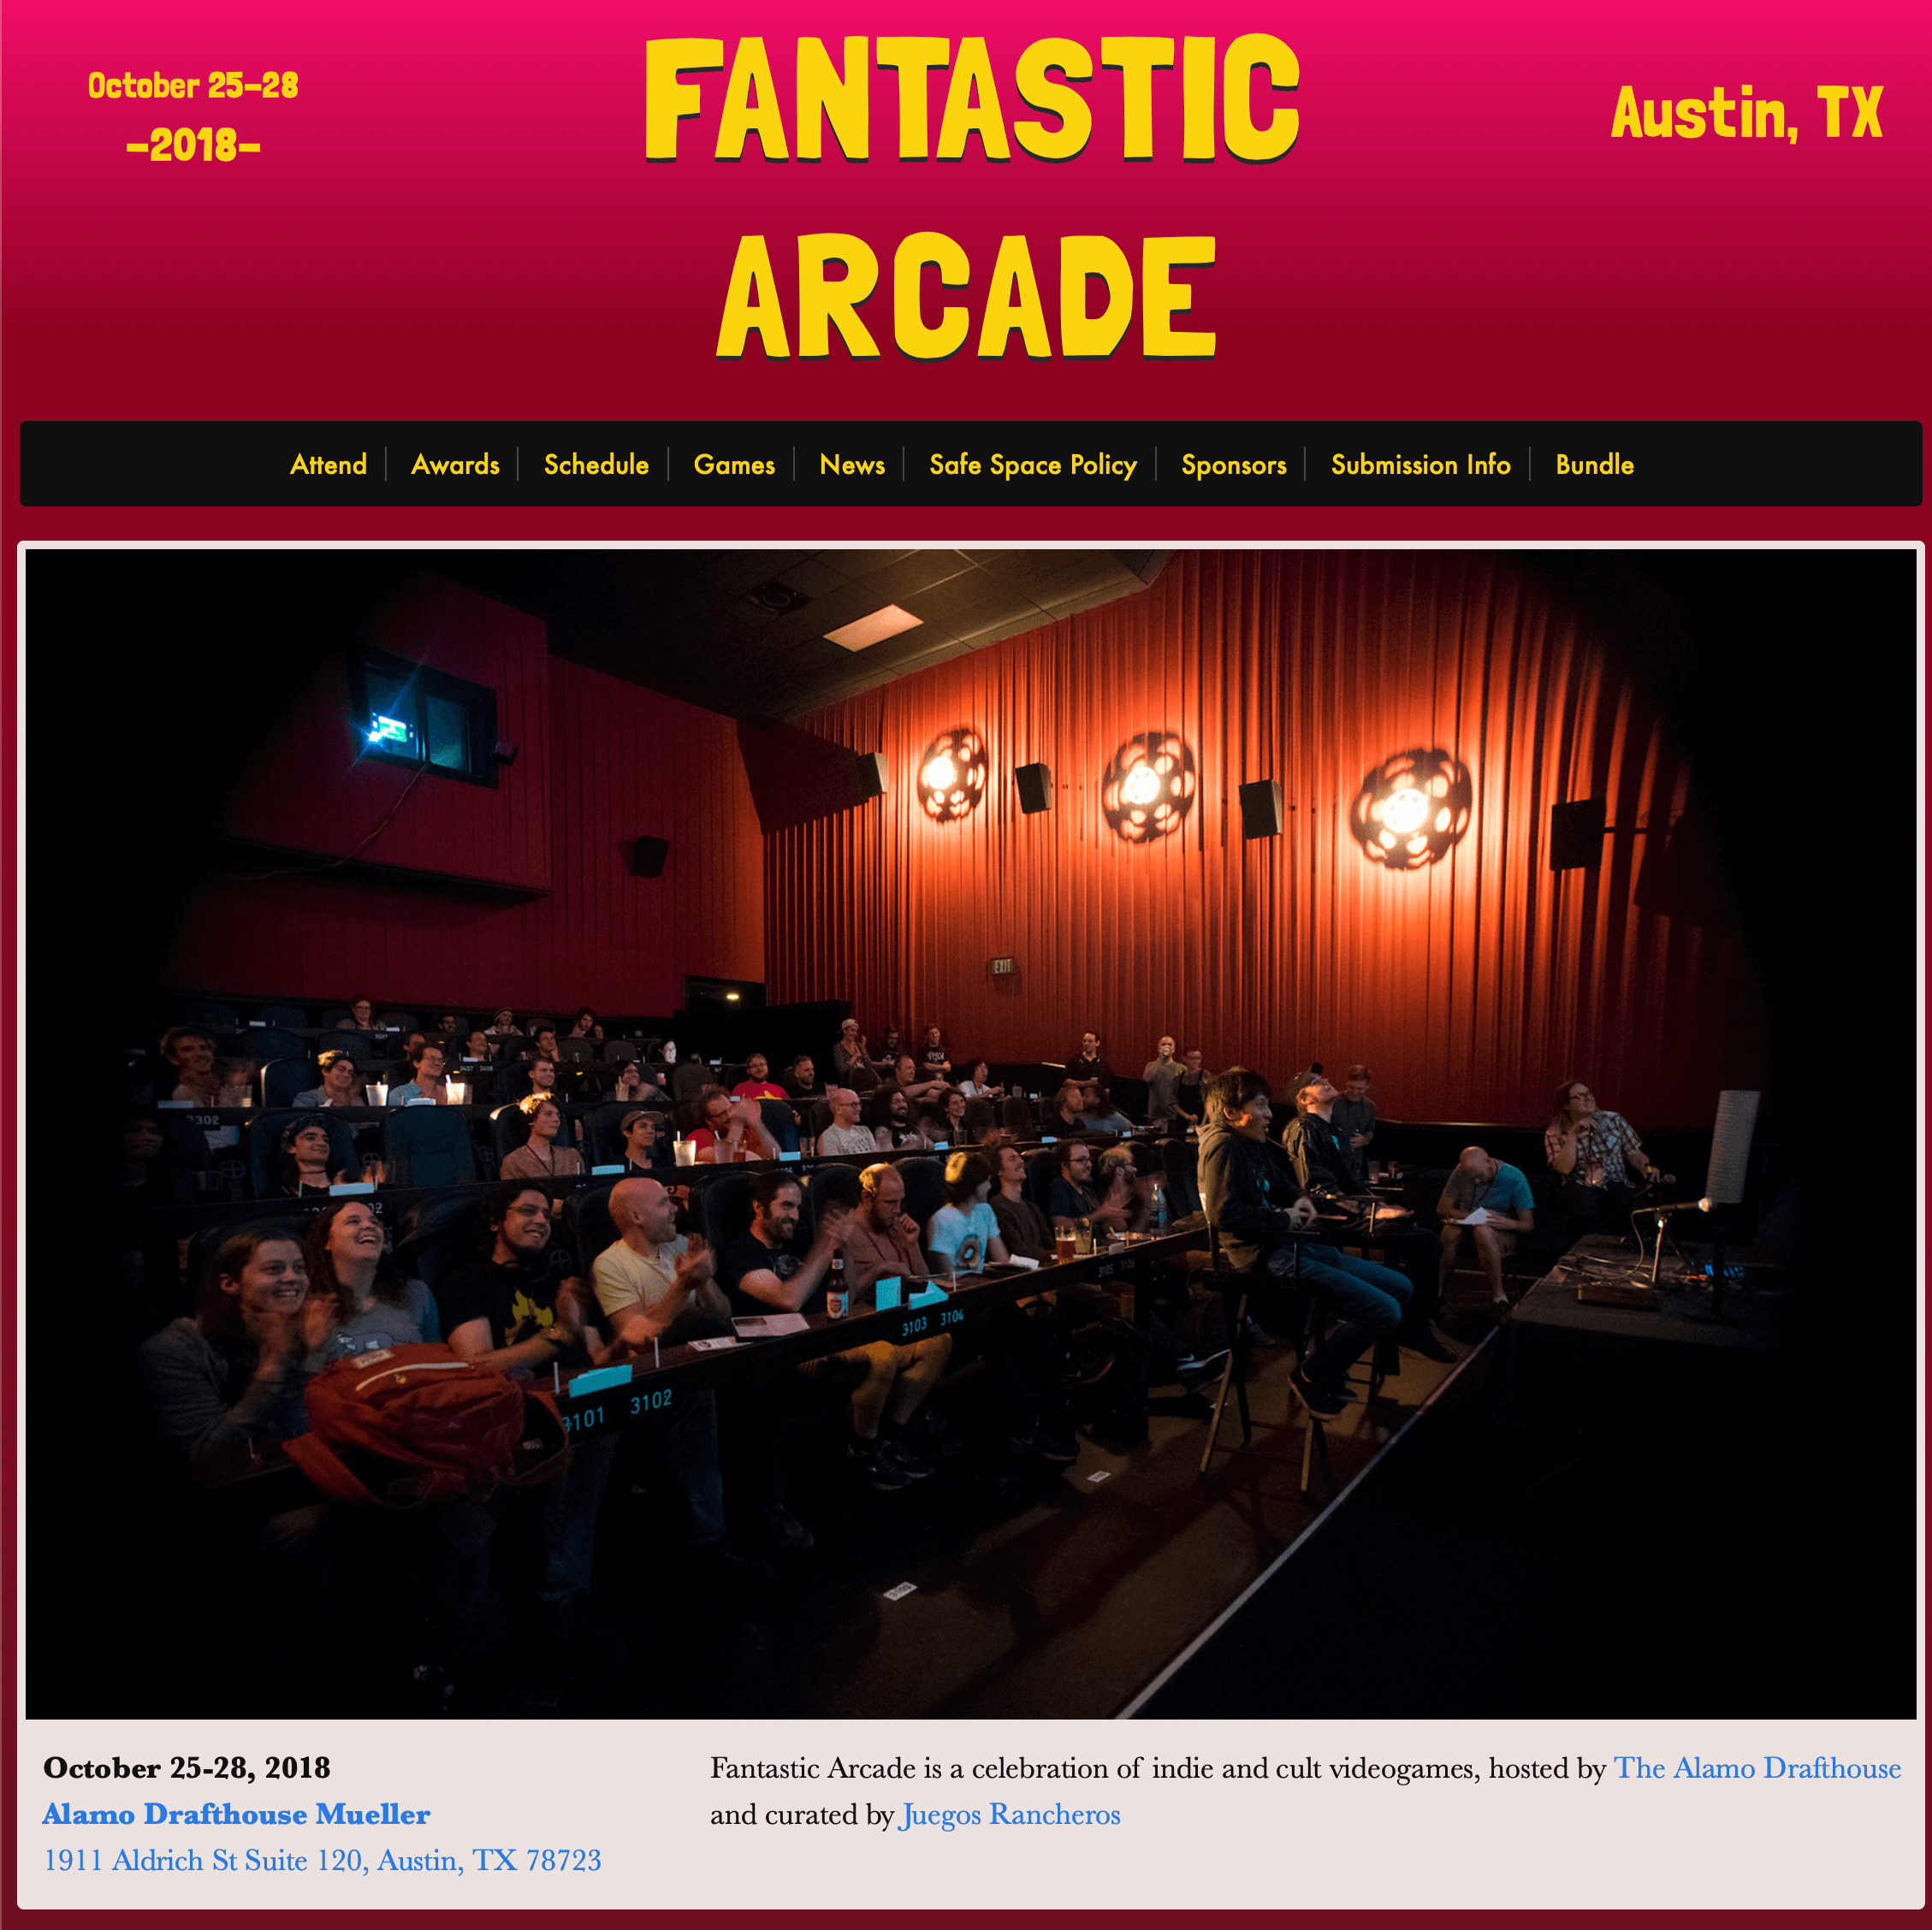 a screenshot of the Fantastic Arcade website